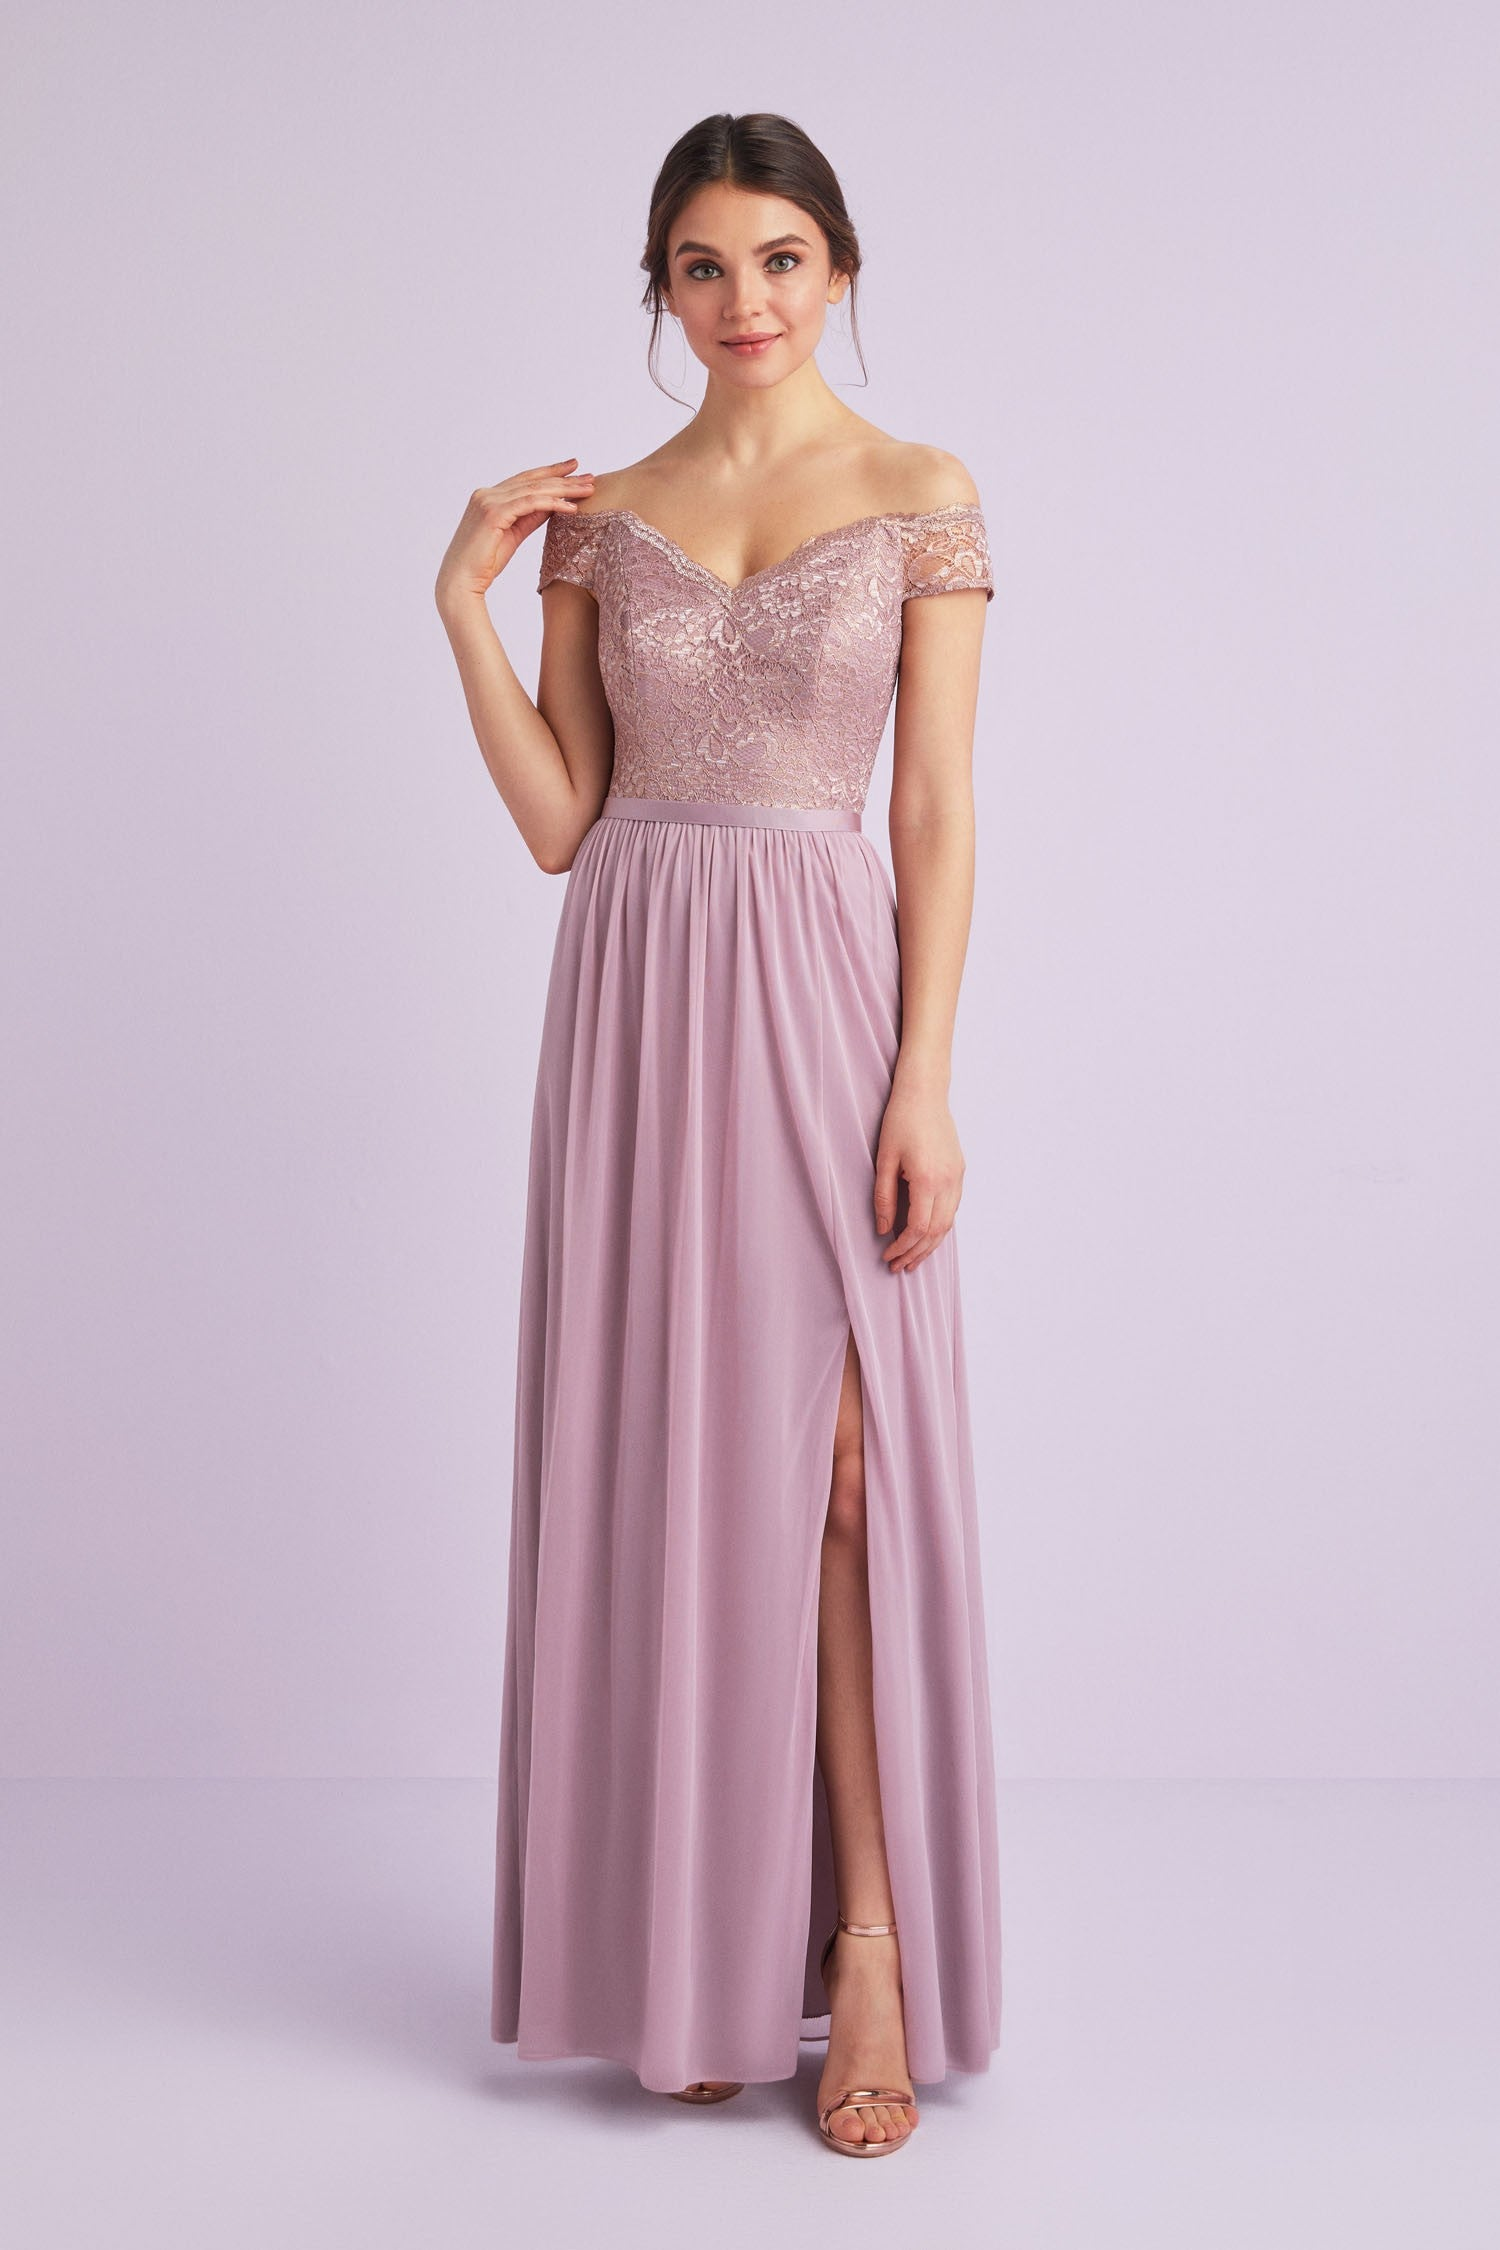 Off The Shoulder Metallic Lace Bridesmaid Dress F19950m